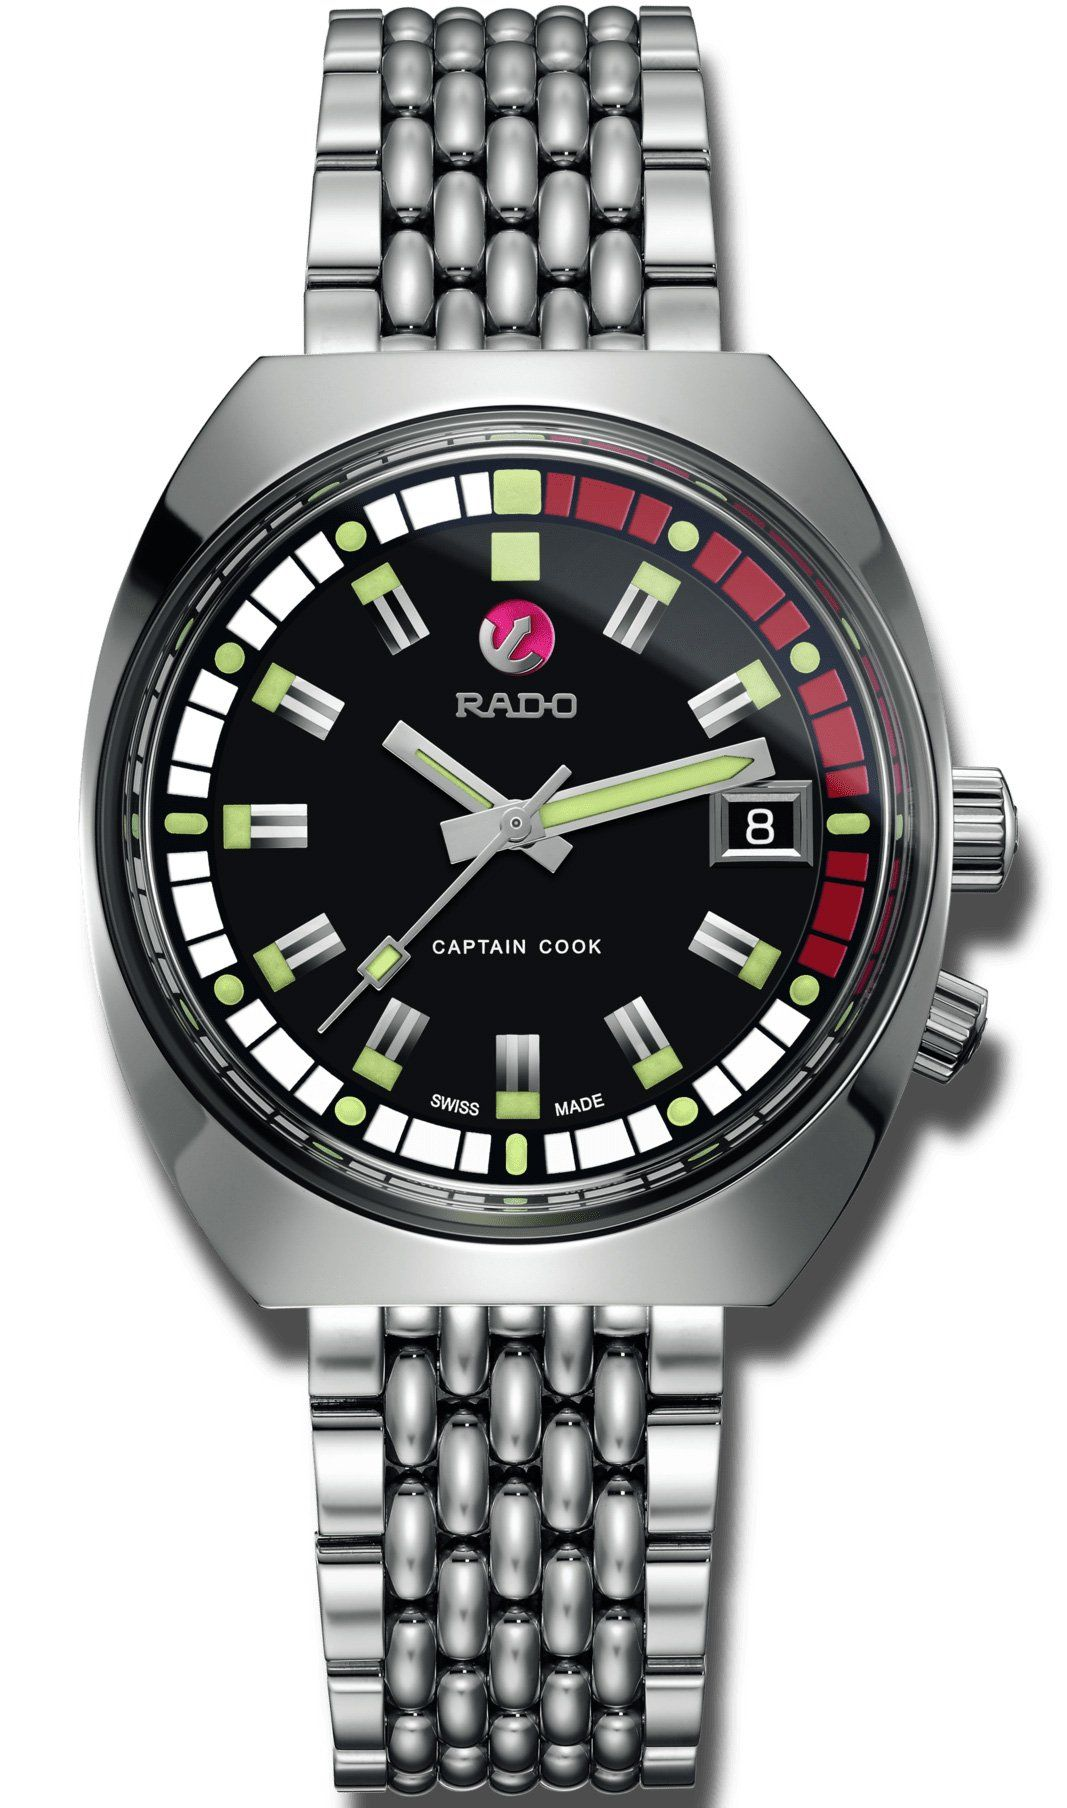 Rado Watch Tradition Captain Cook M Limited Edition Luxury Watches For Men Rado Limited Edition Watches